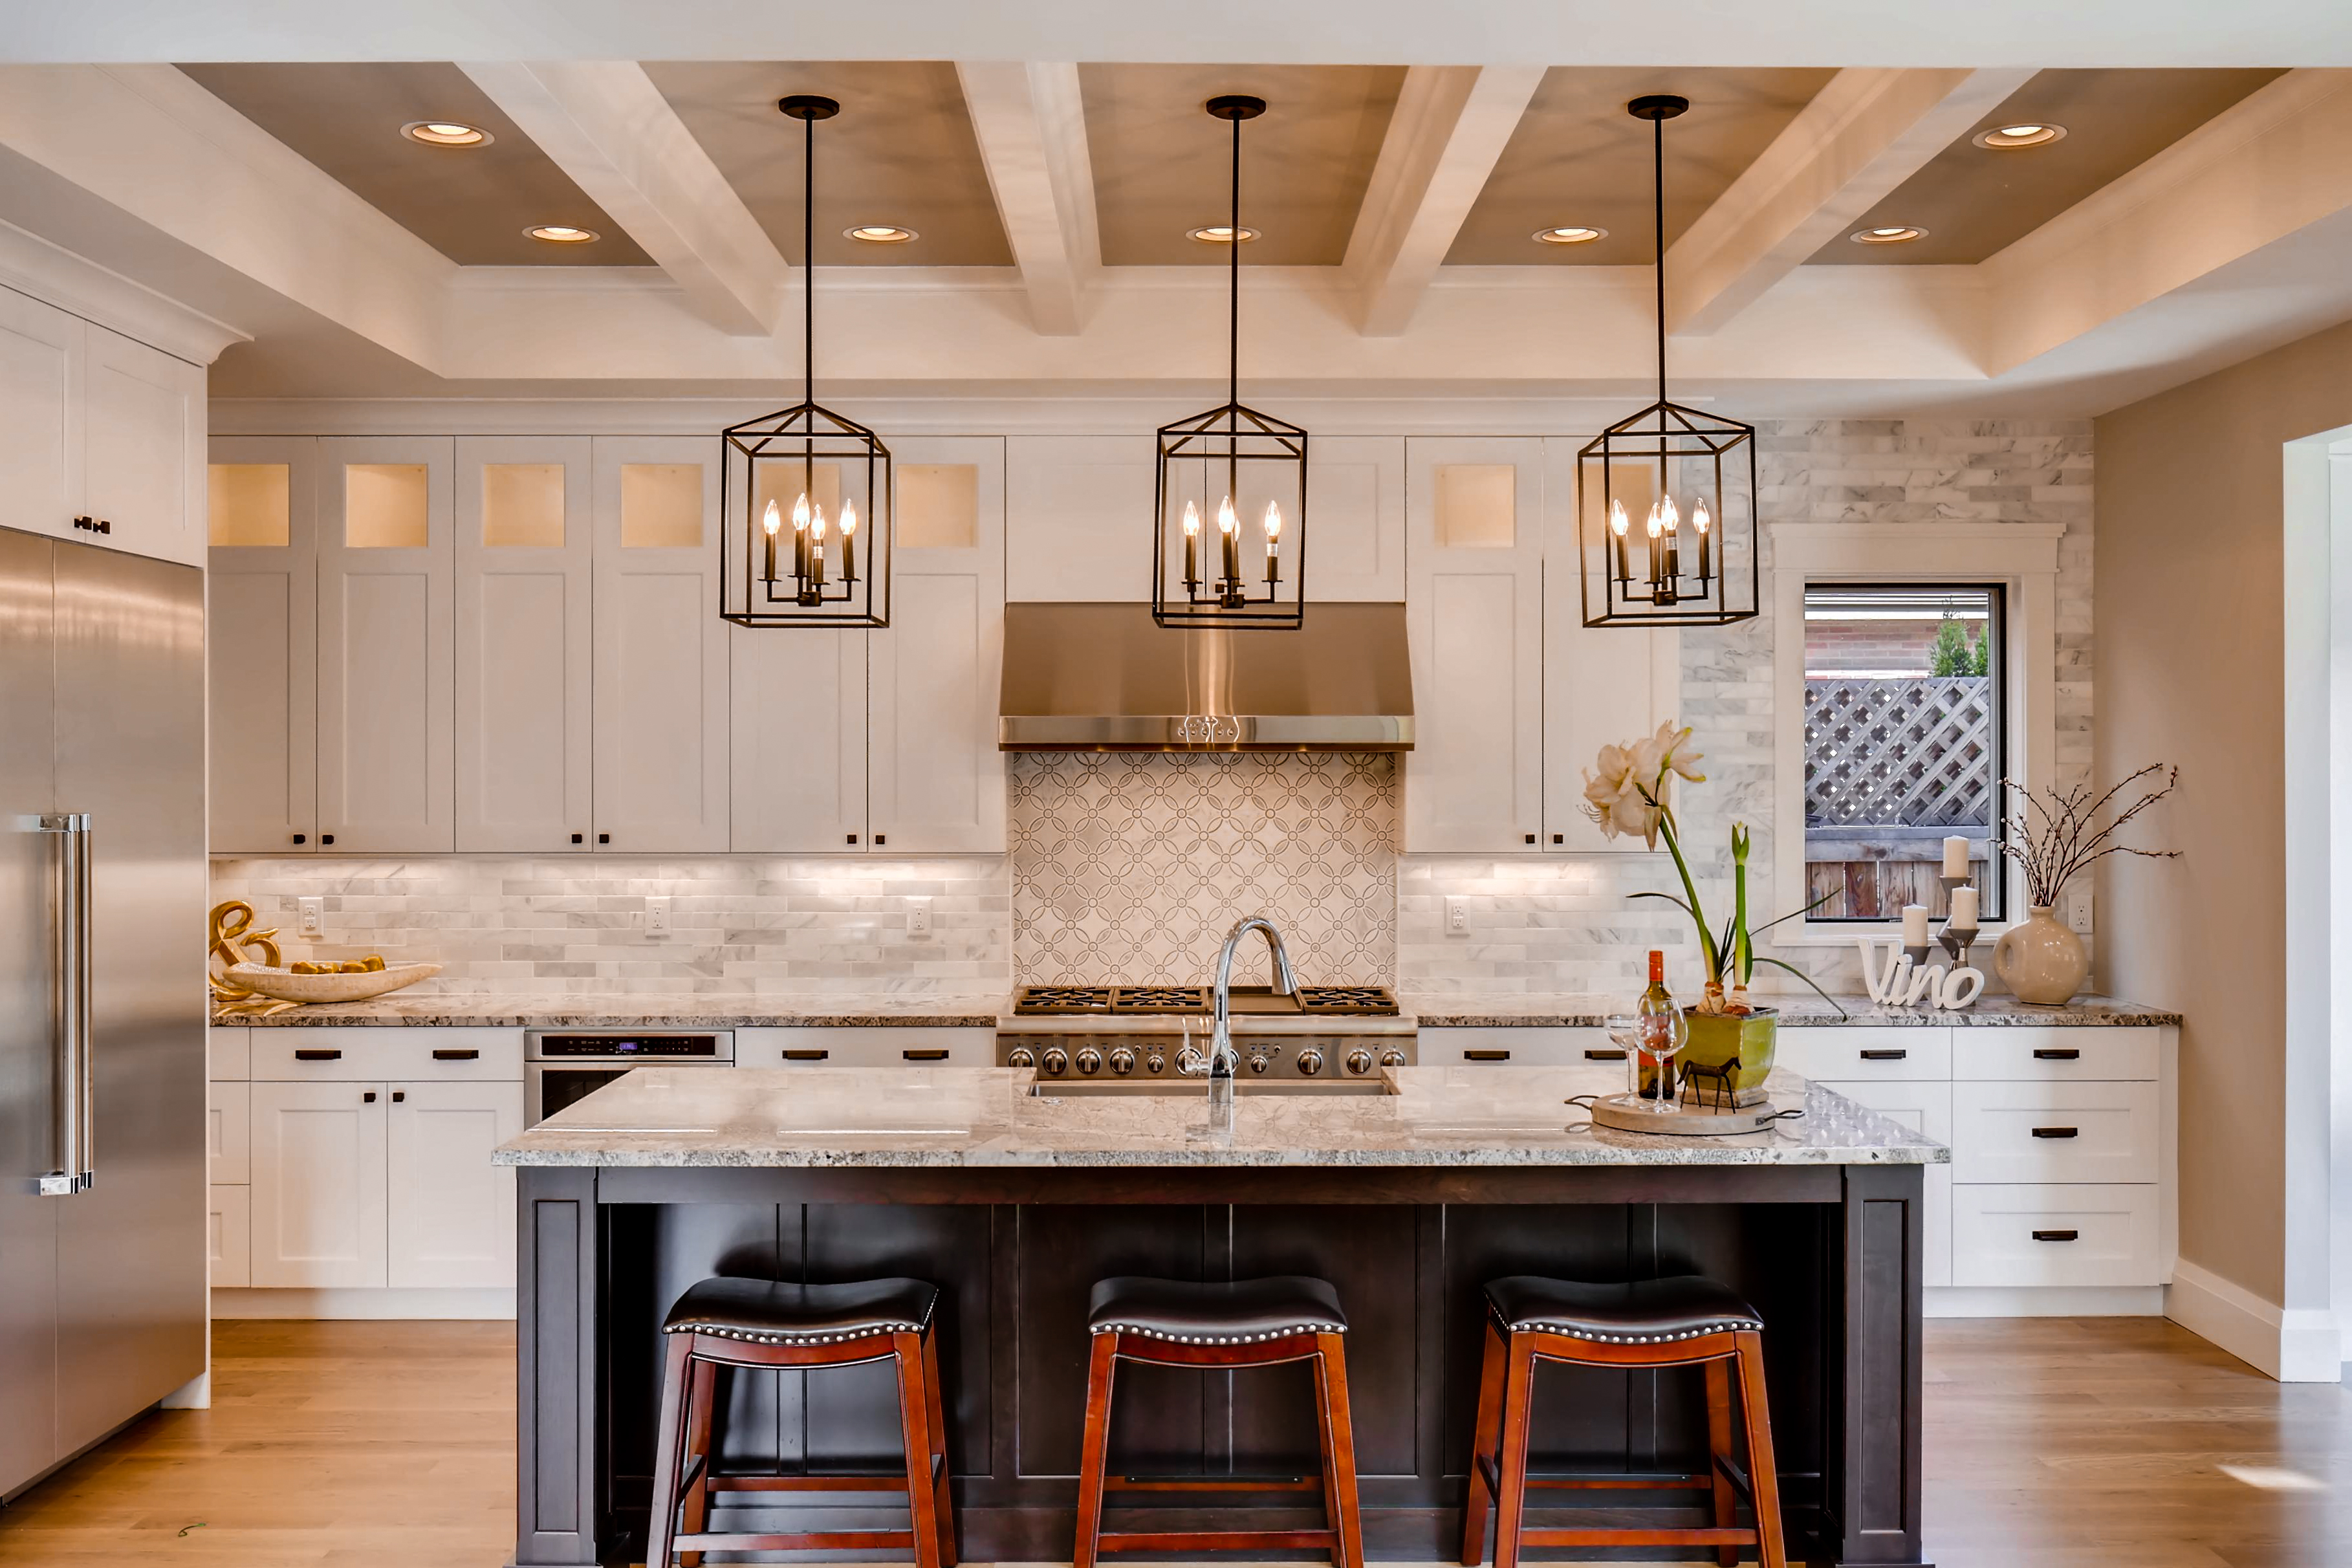 The Top 8 Interior Design Kitchen Trends